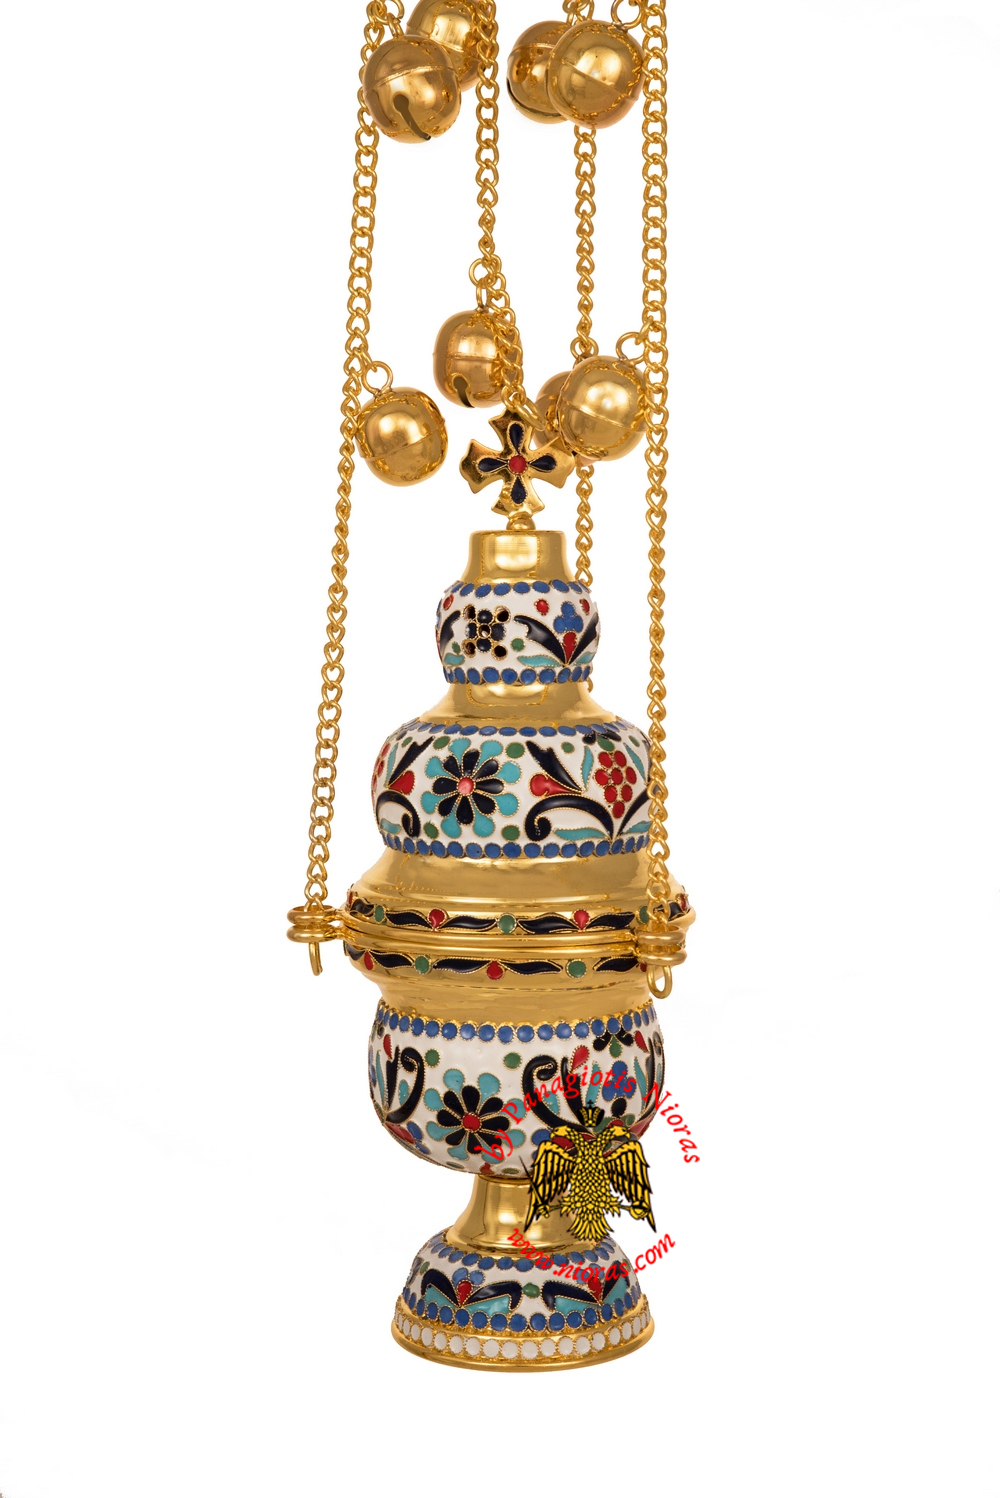 Ecclesiastical Orthodox Censer Athinaiko Style With Enamel Hand Made Gold Plated